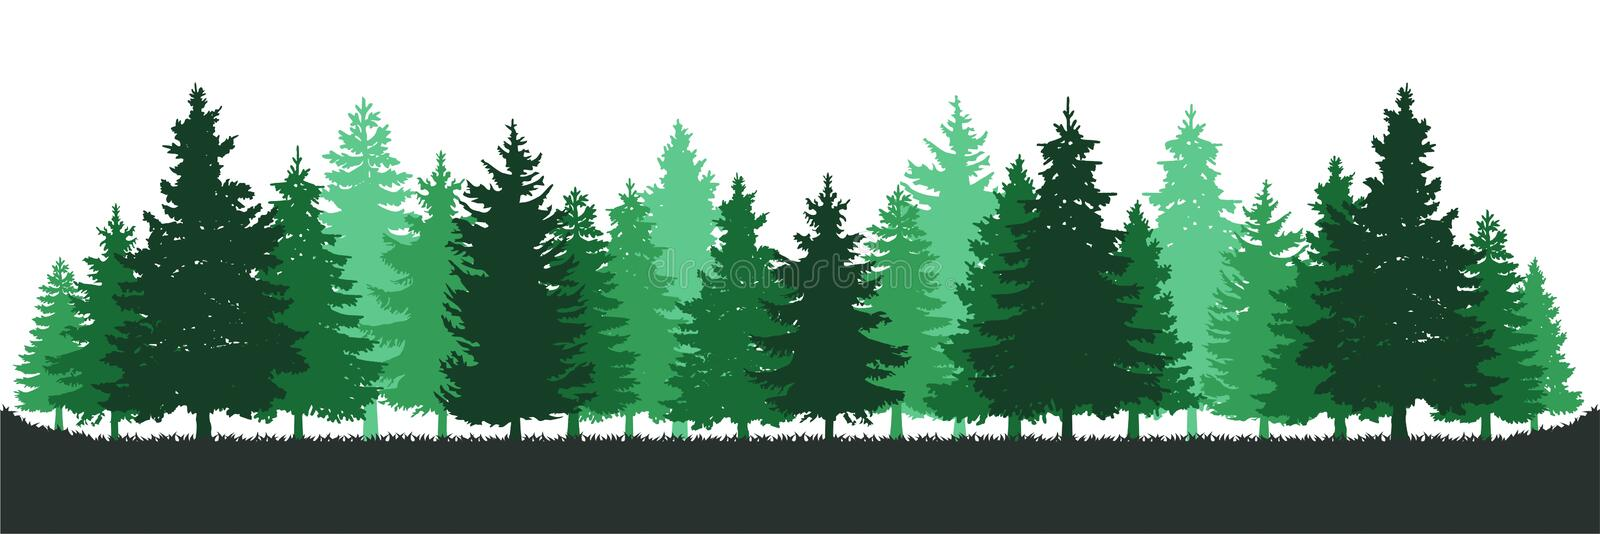 Green Pine Tree Forest Environment royalty free illustration